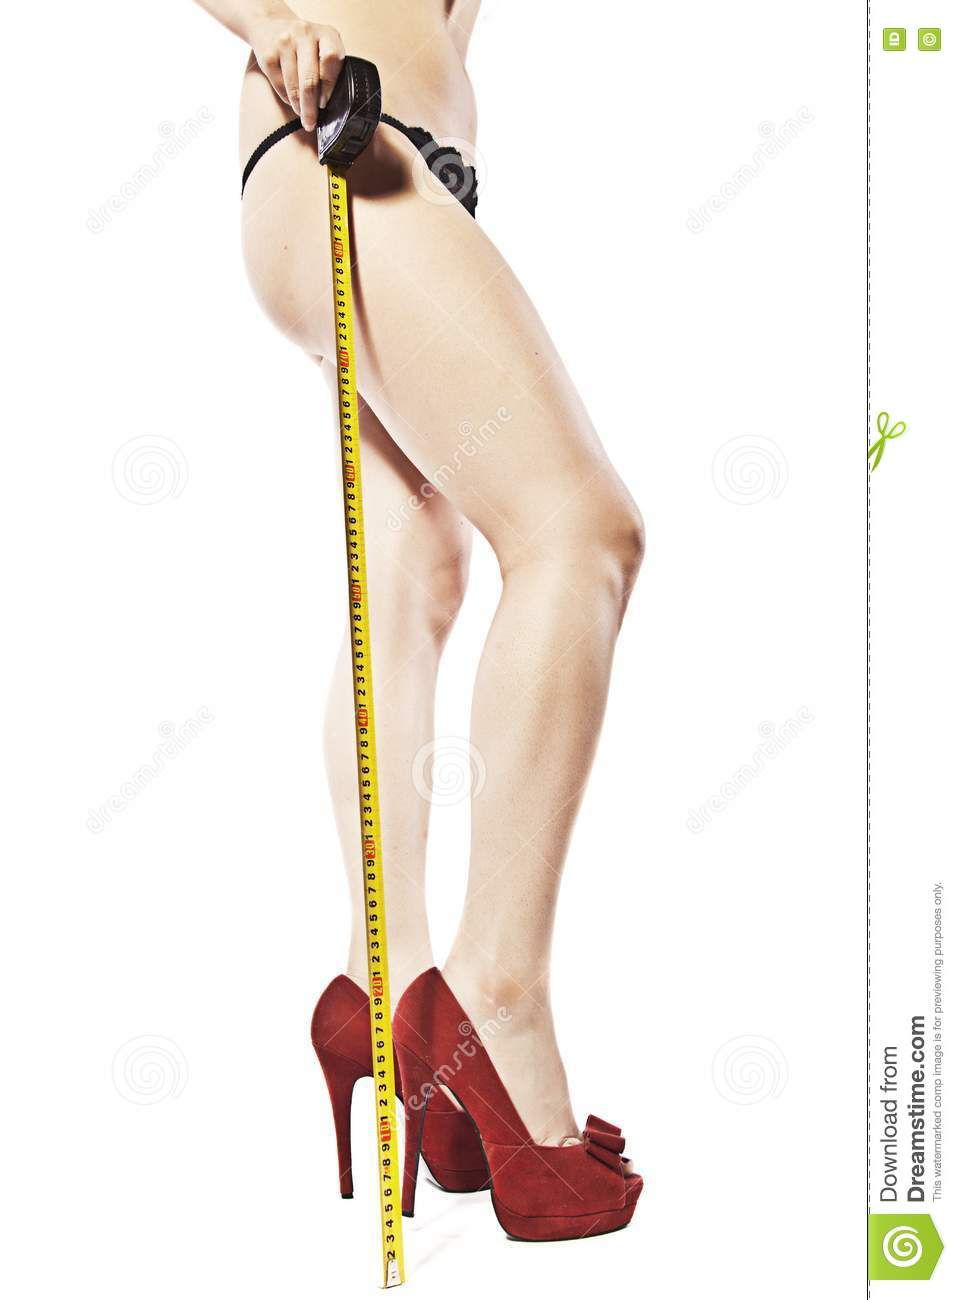 Measuring Her Legs Stock Photo  Image Of White  Shoes